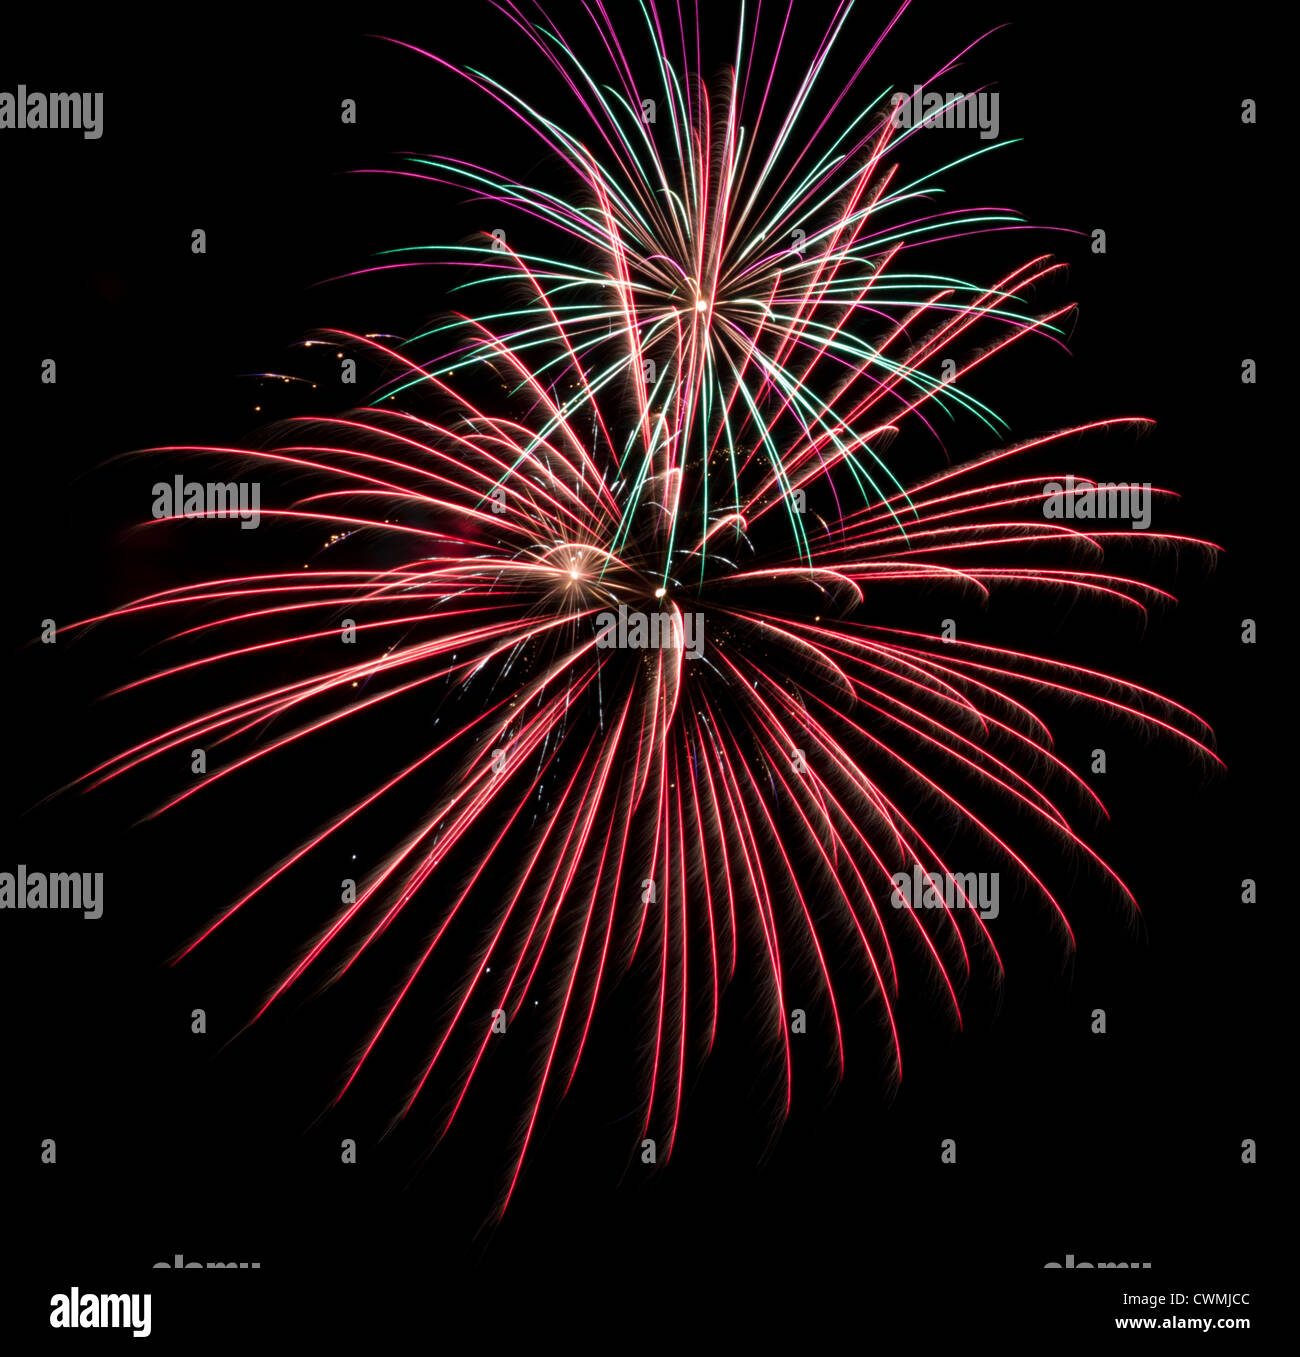 Firework Wedding Stock Photos & Firework Wedding Stock Images - Alamy